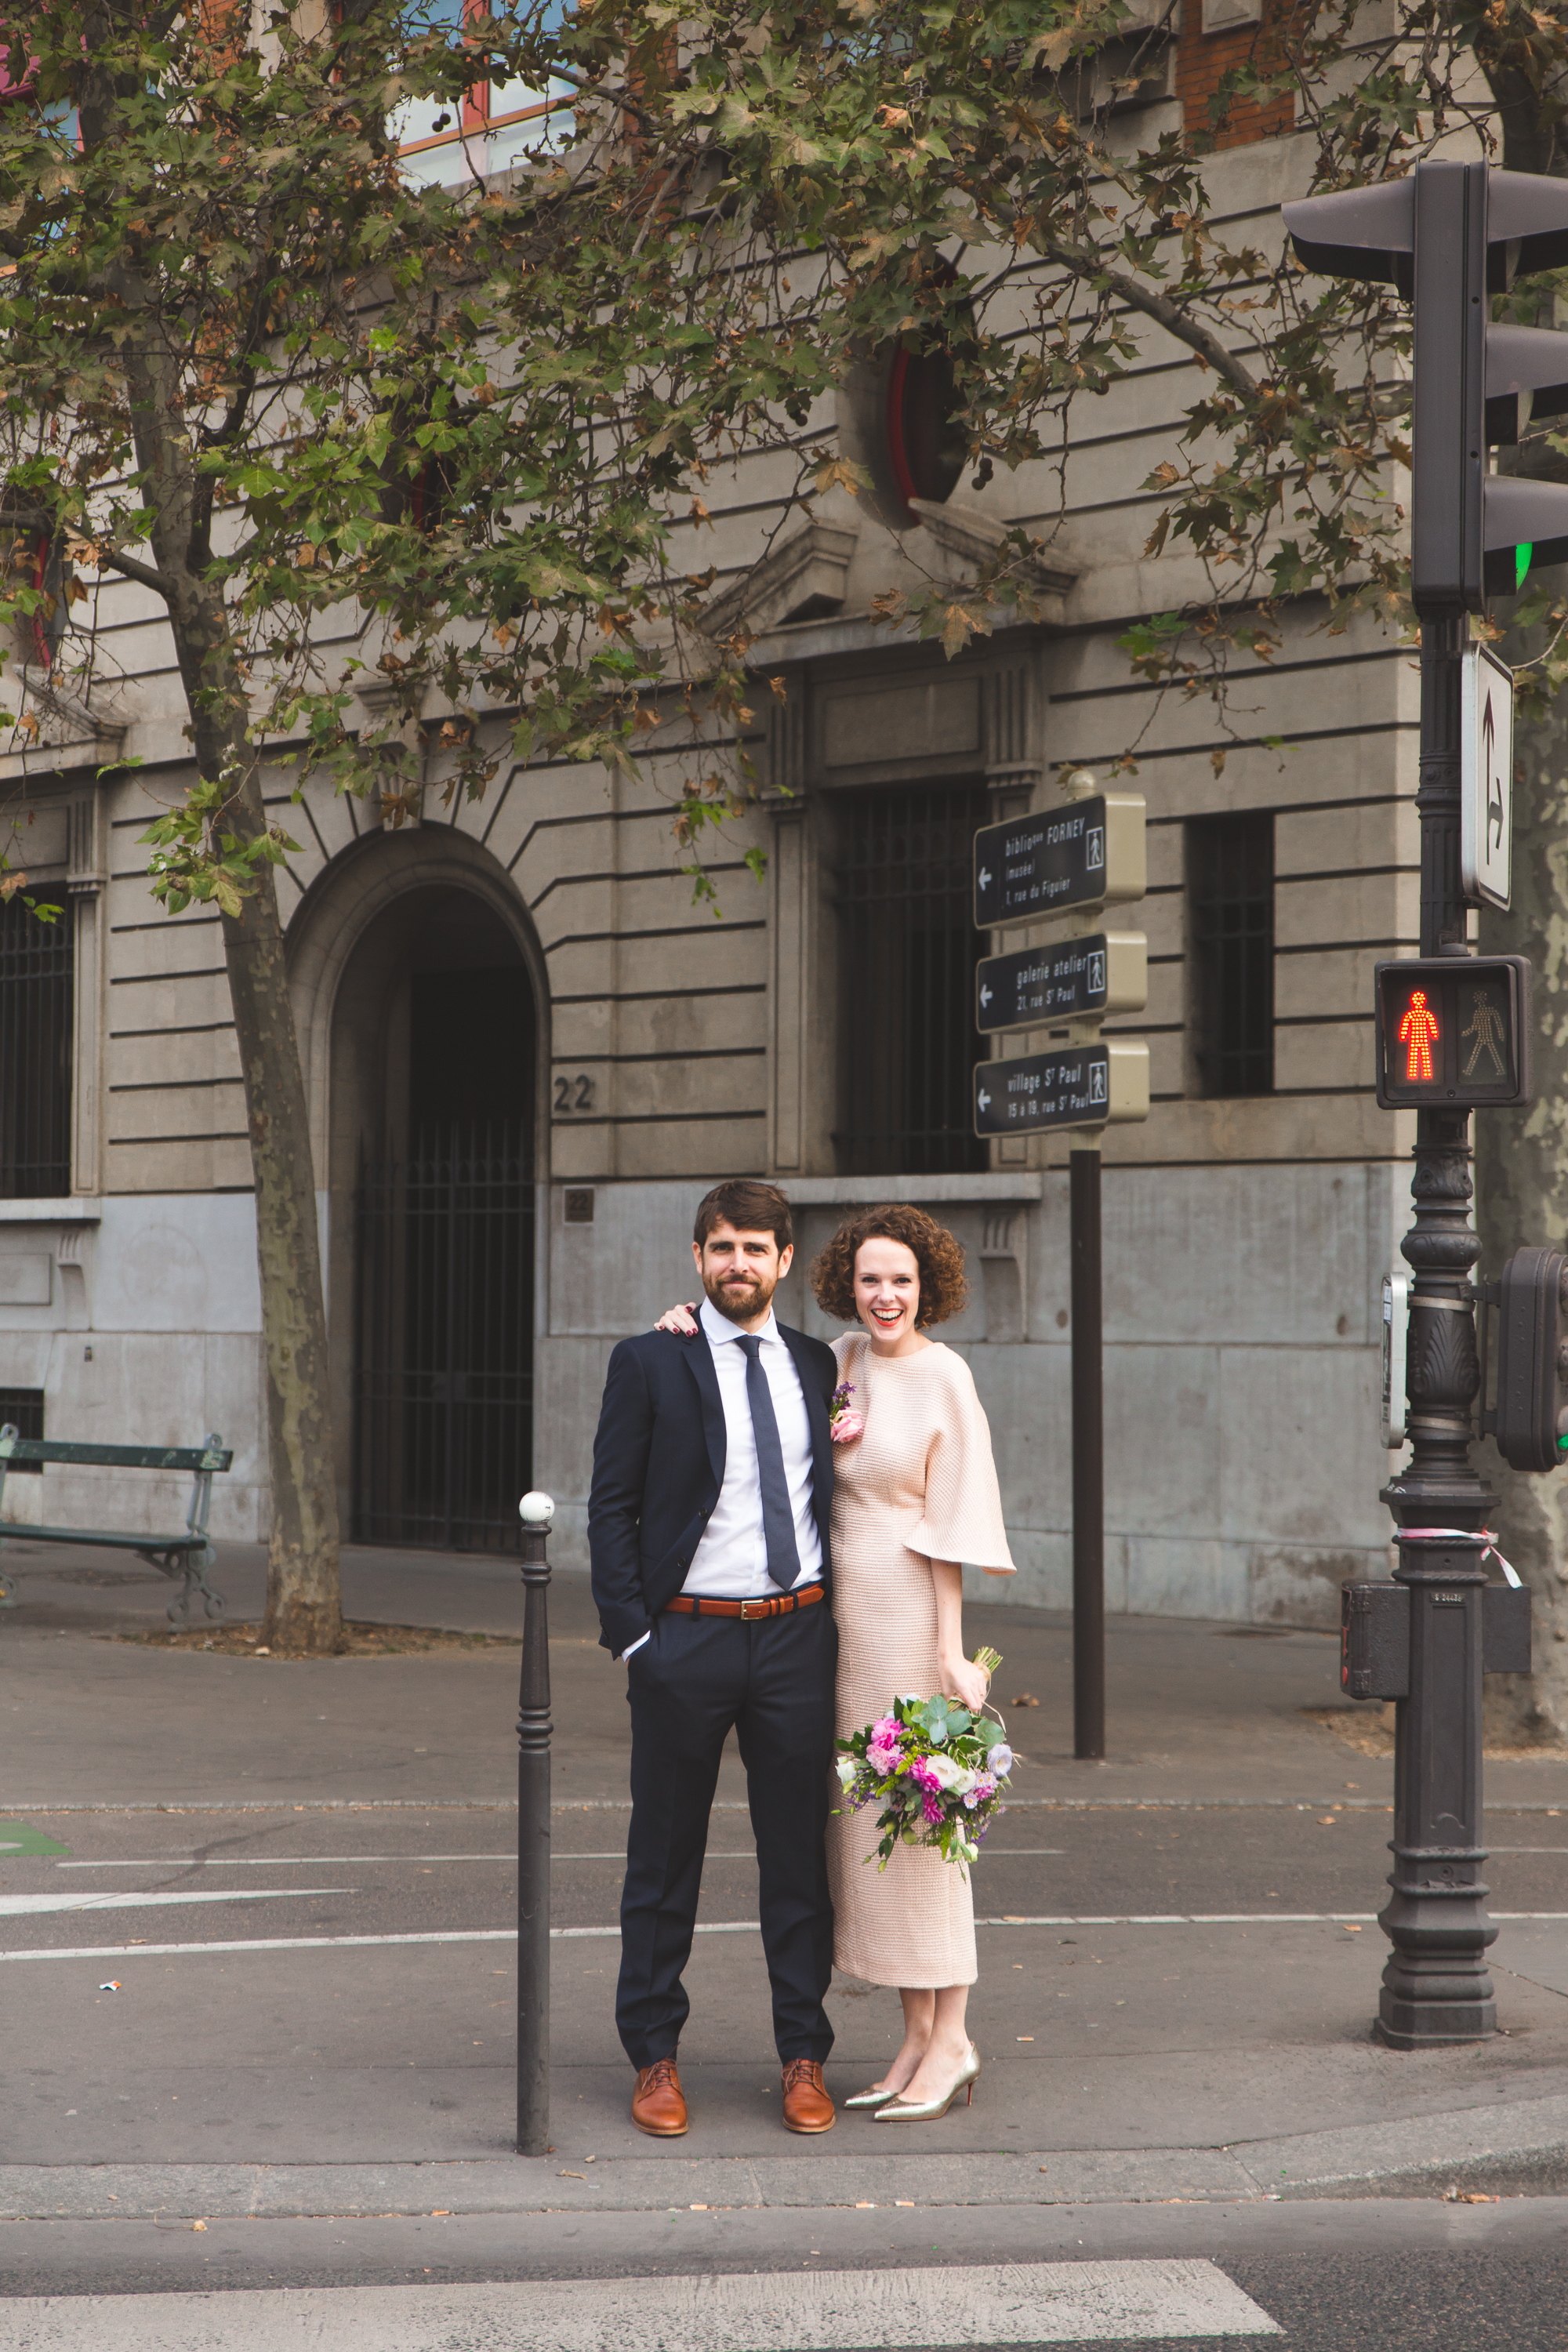 Emma&Nico_WeddingParis_by_UlaBlocksage-134.jpg